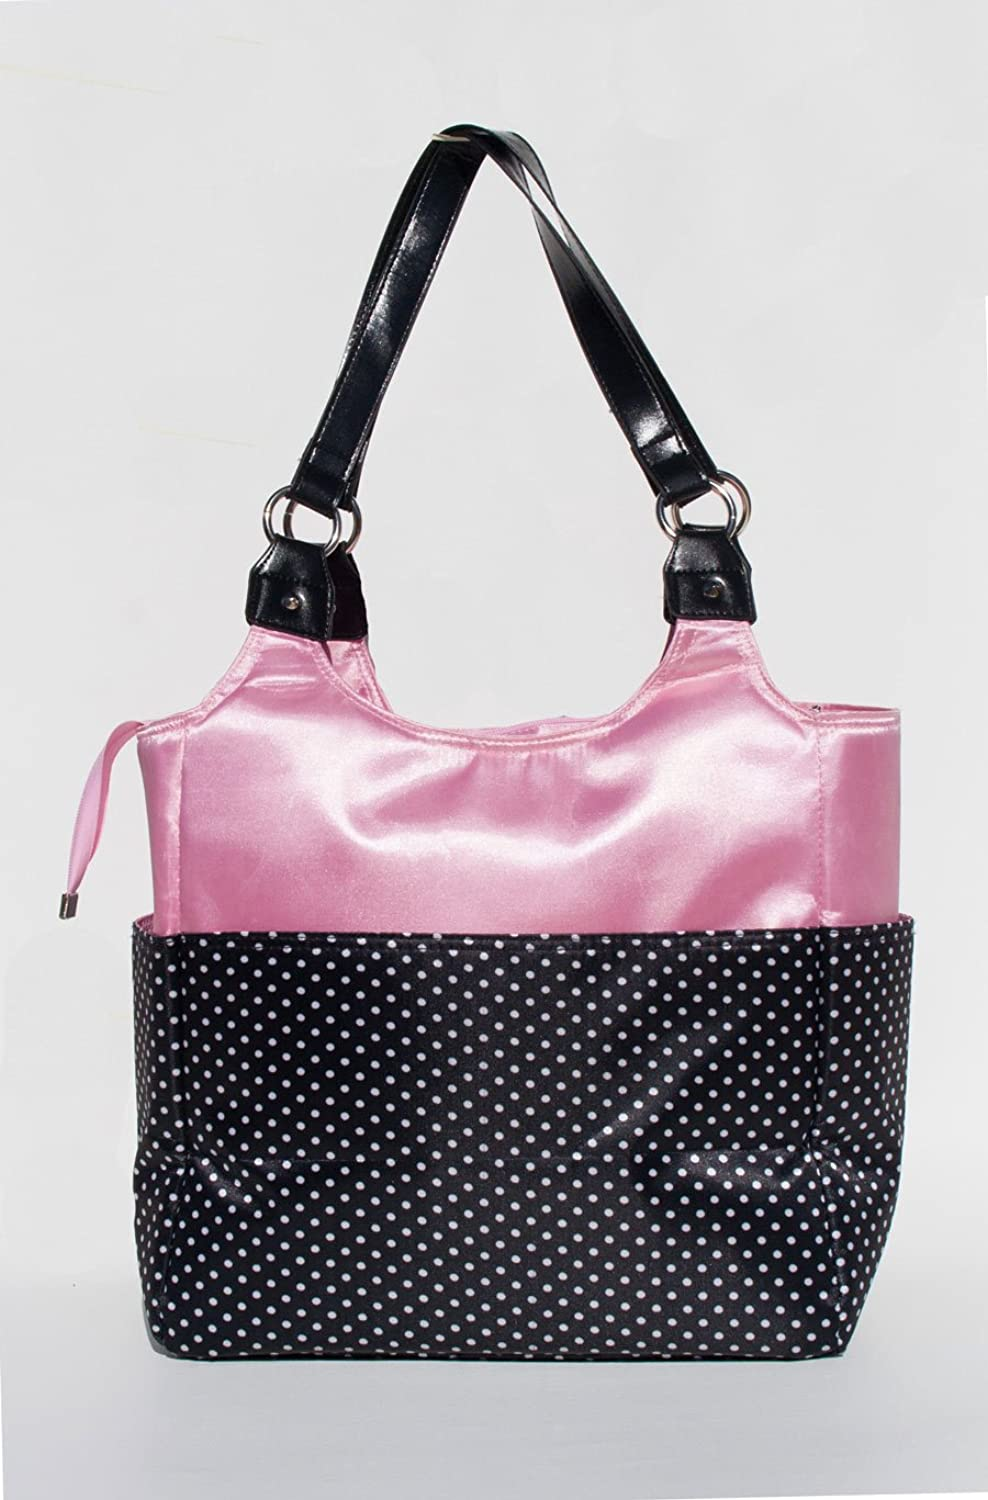 Authentic SmartGirl Bag - New! - Pretty In Pink - The Perfect Ladies Organizer Tote